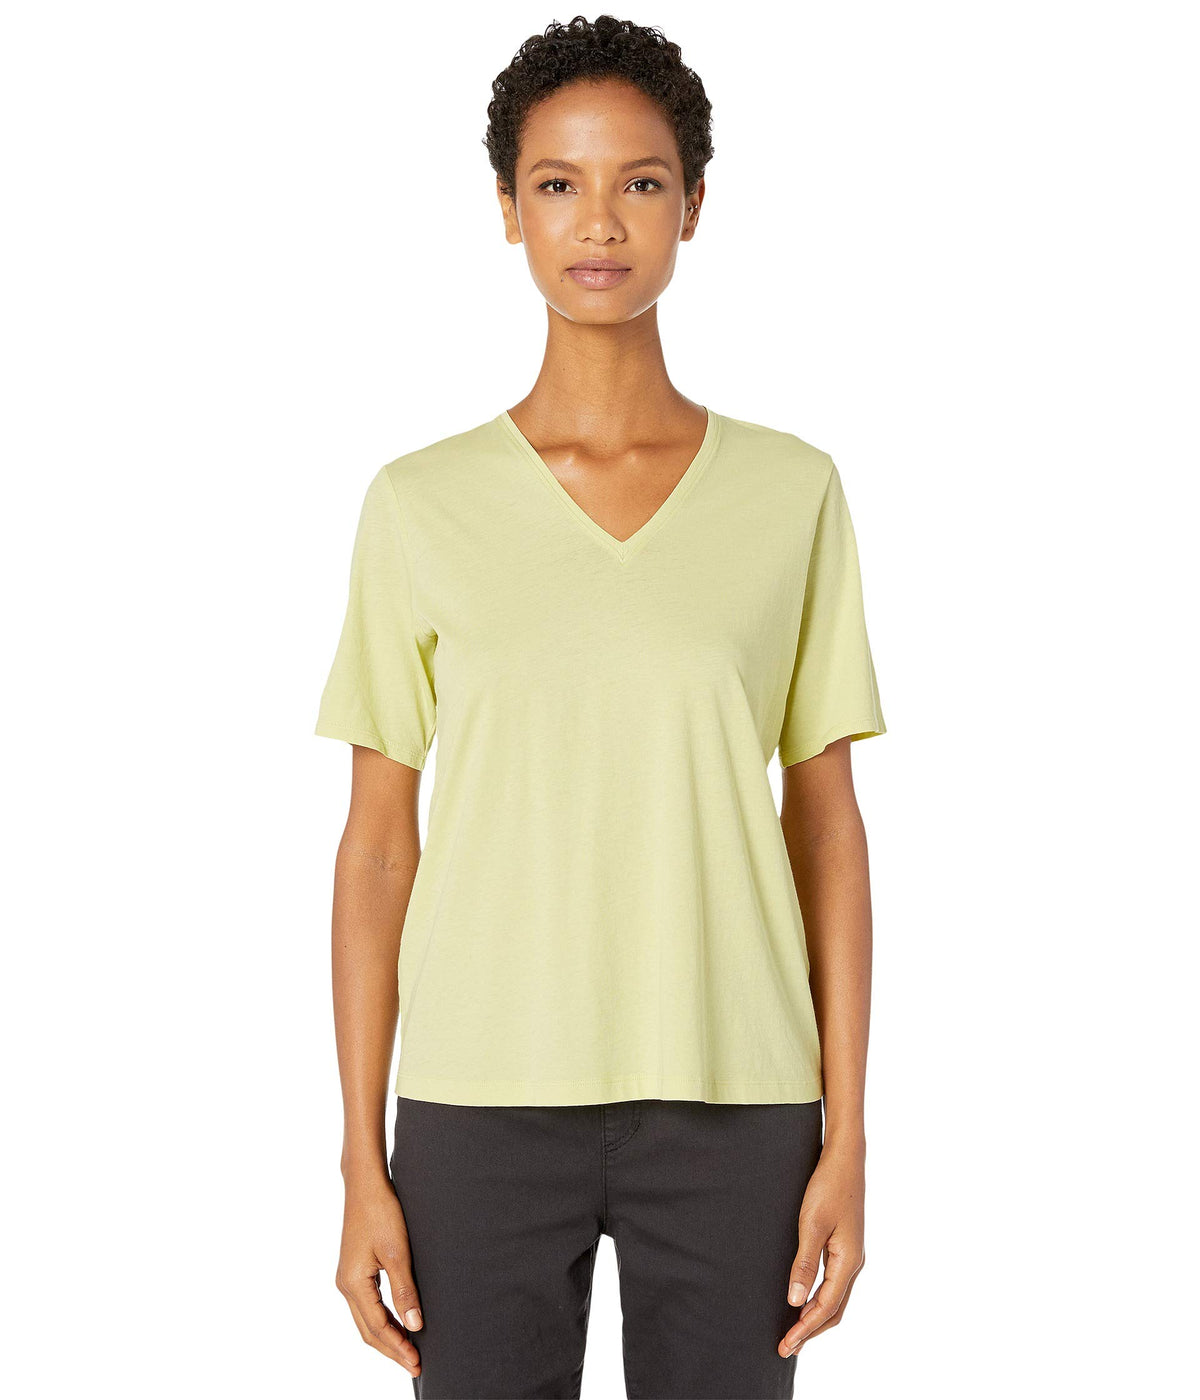 Organic Cotton Jersey V-Neck Short Sleeve Top